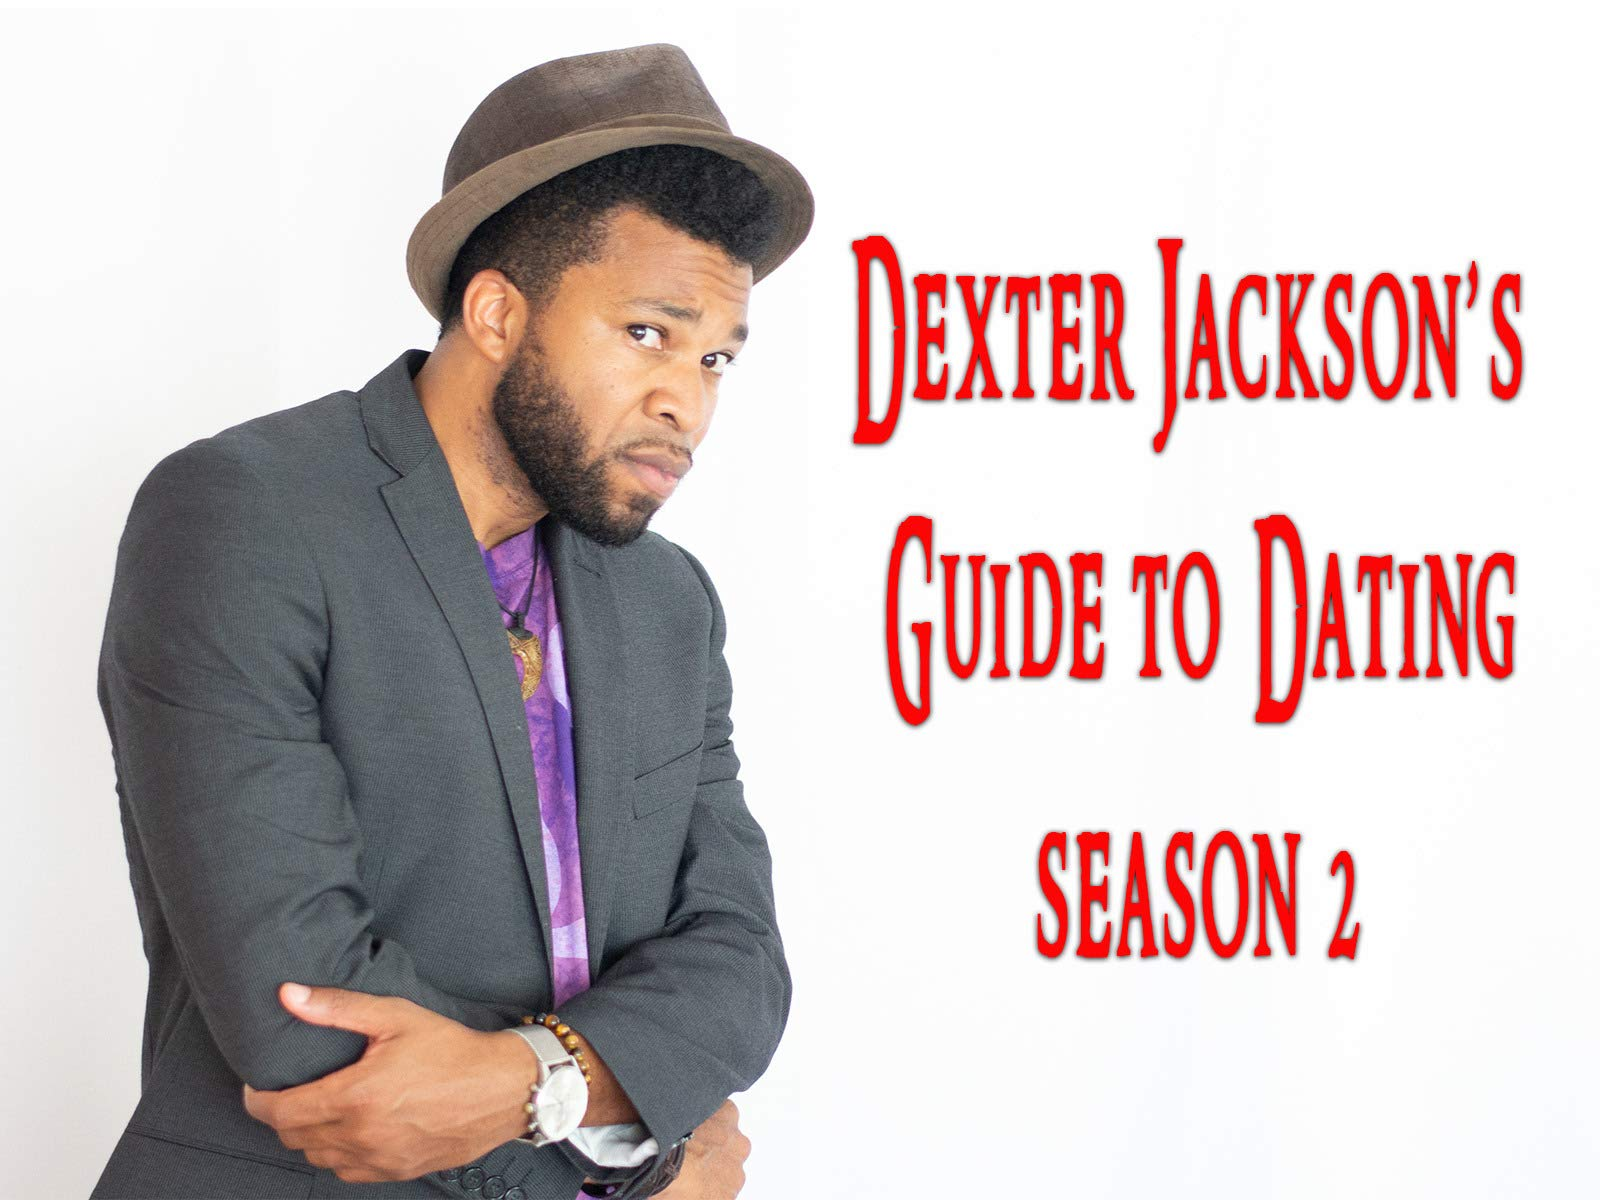 Dexter Jackson's Guide to Dating - Season 2